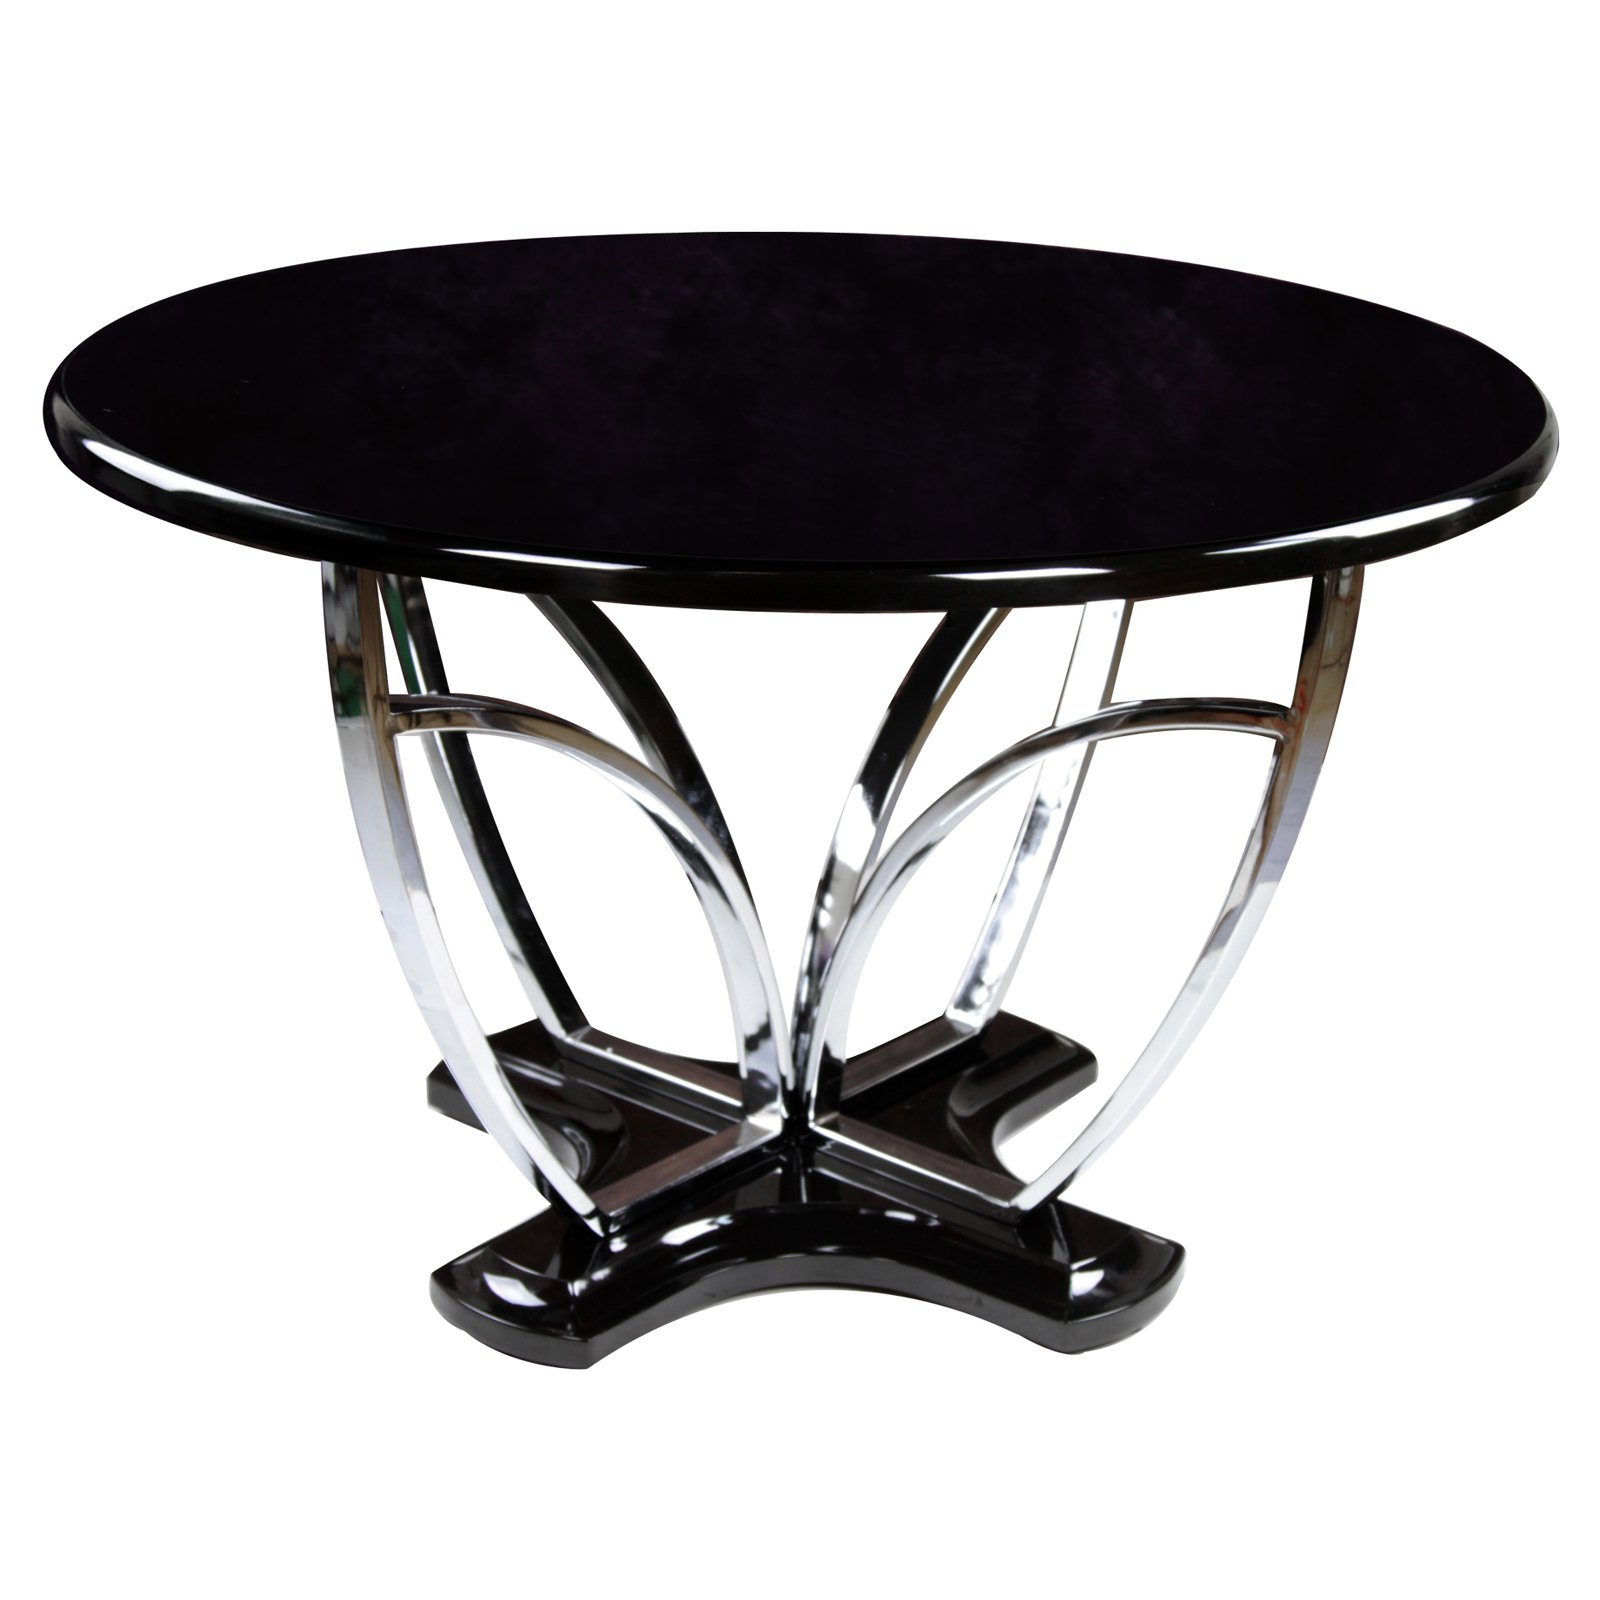 Furniture of America Black Domita 48 in. Round Dining Table by Enitial Lab